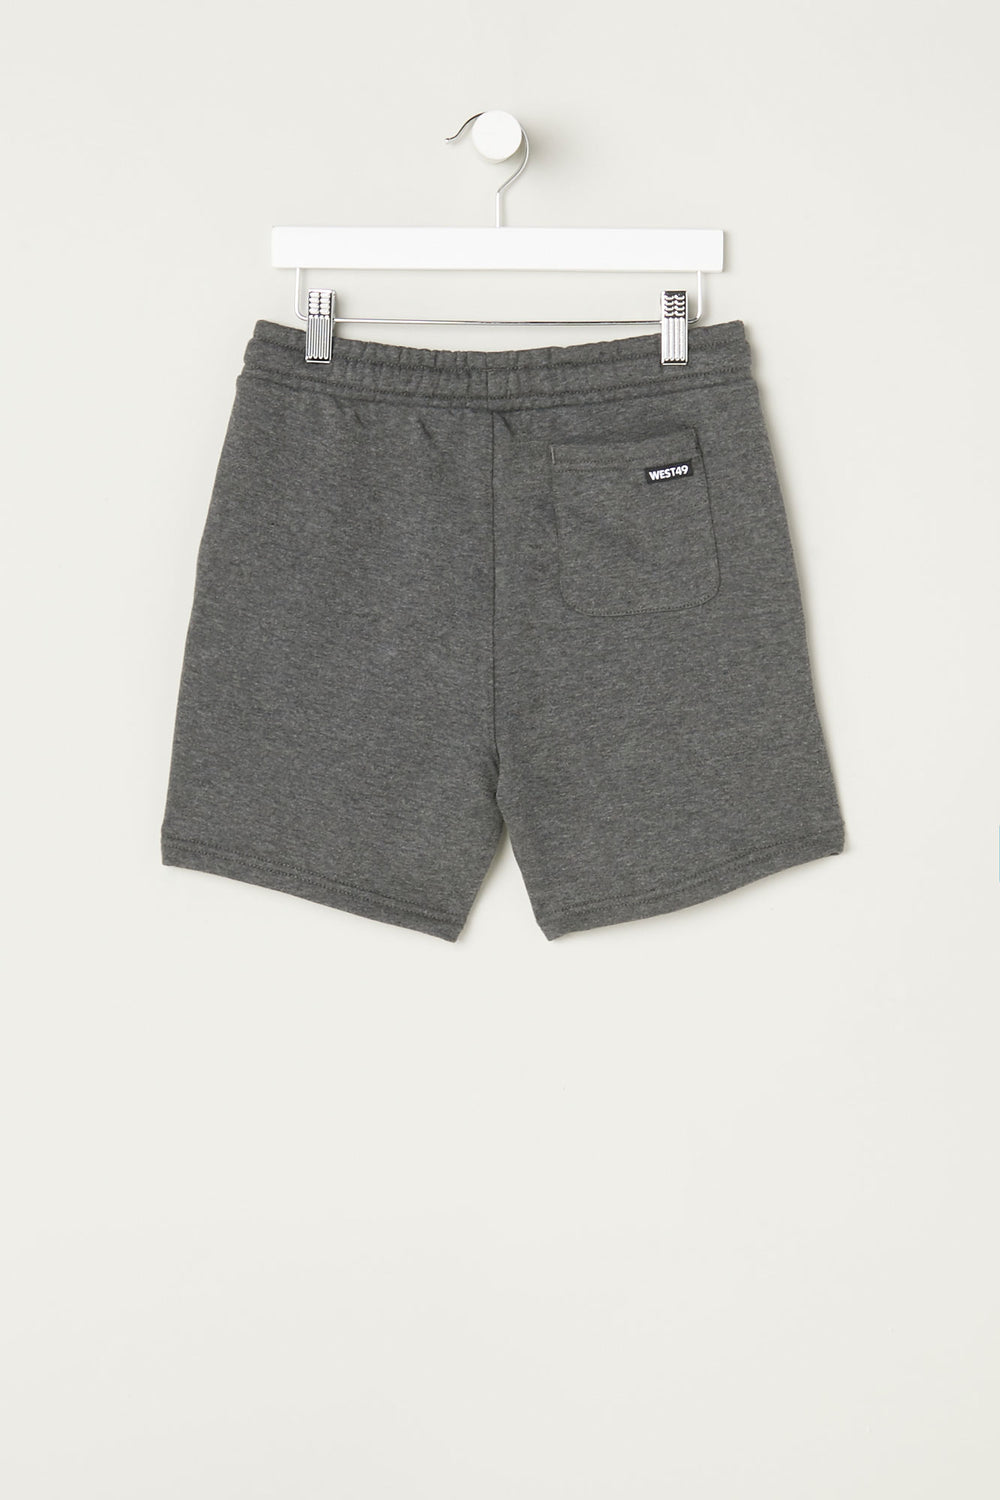 West49 Youth Basic Fleece Short Charcoal